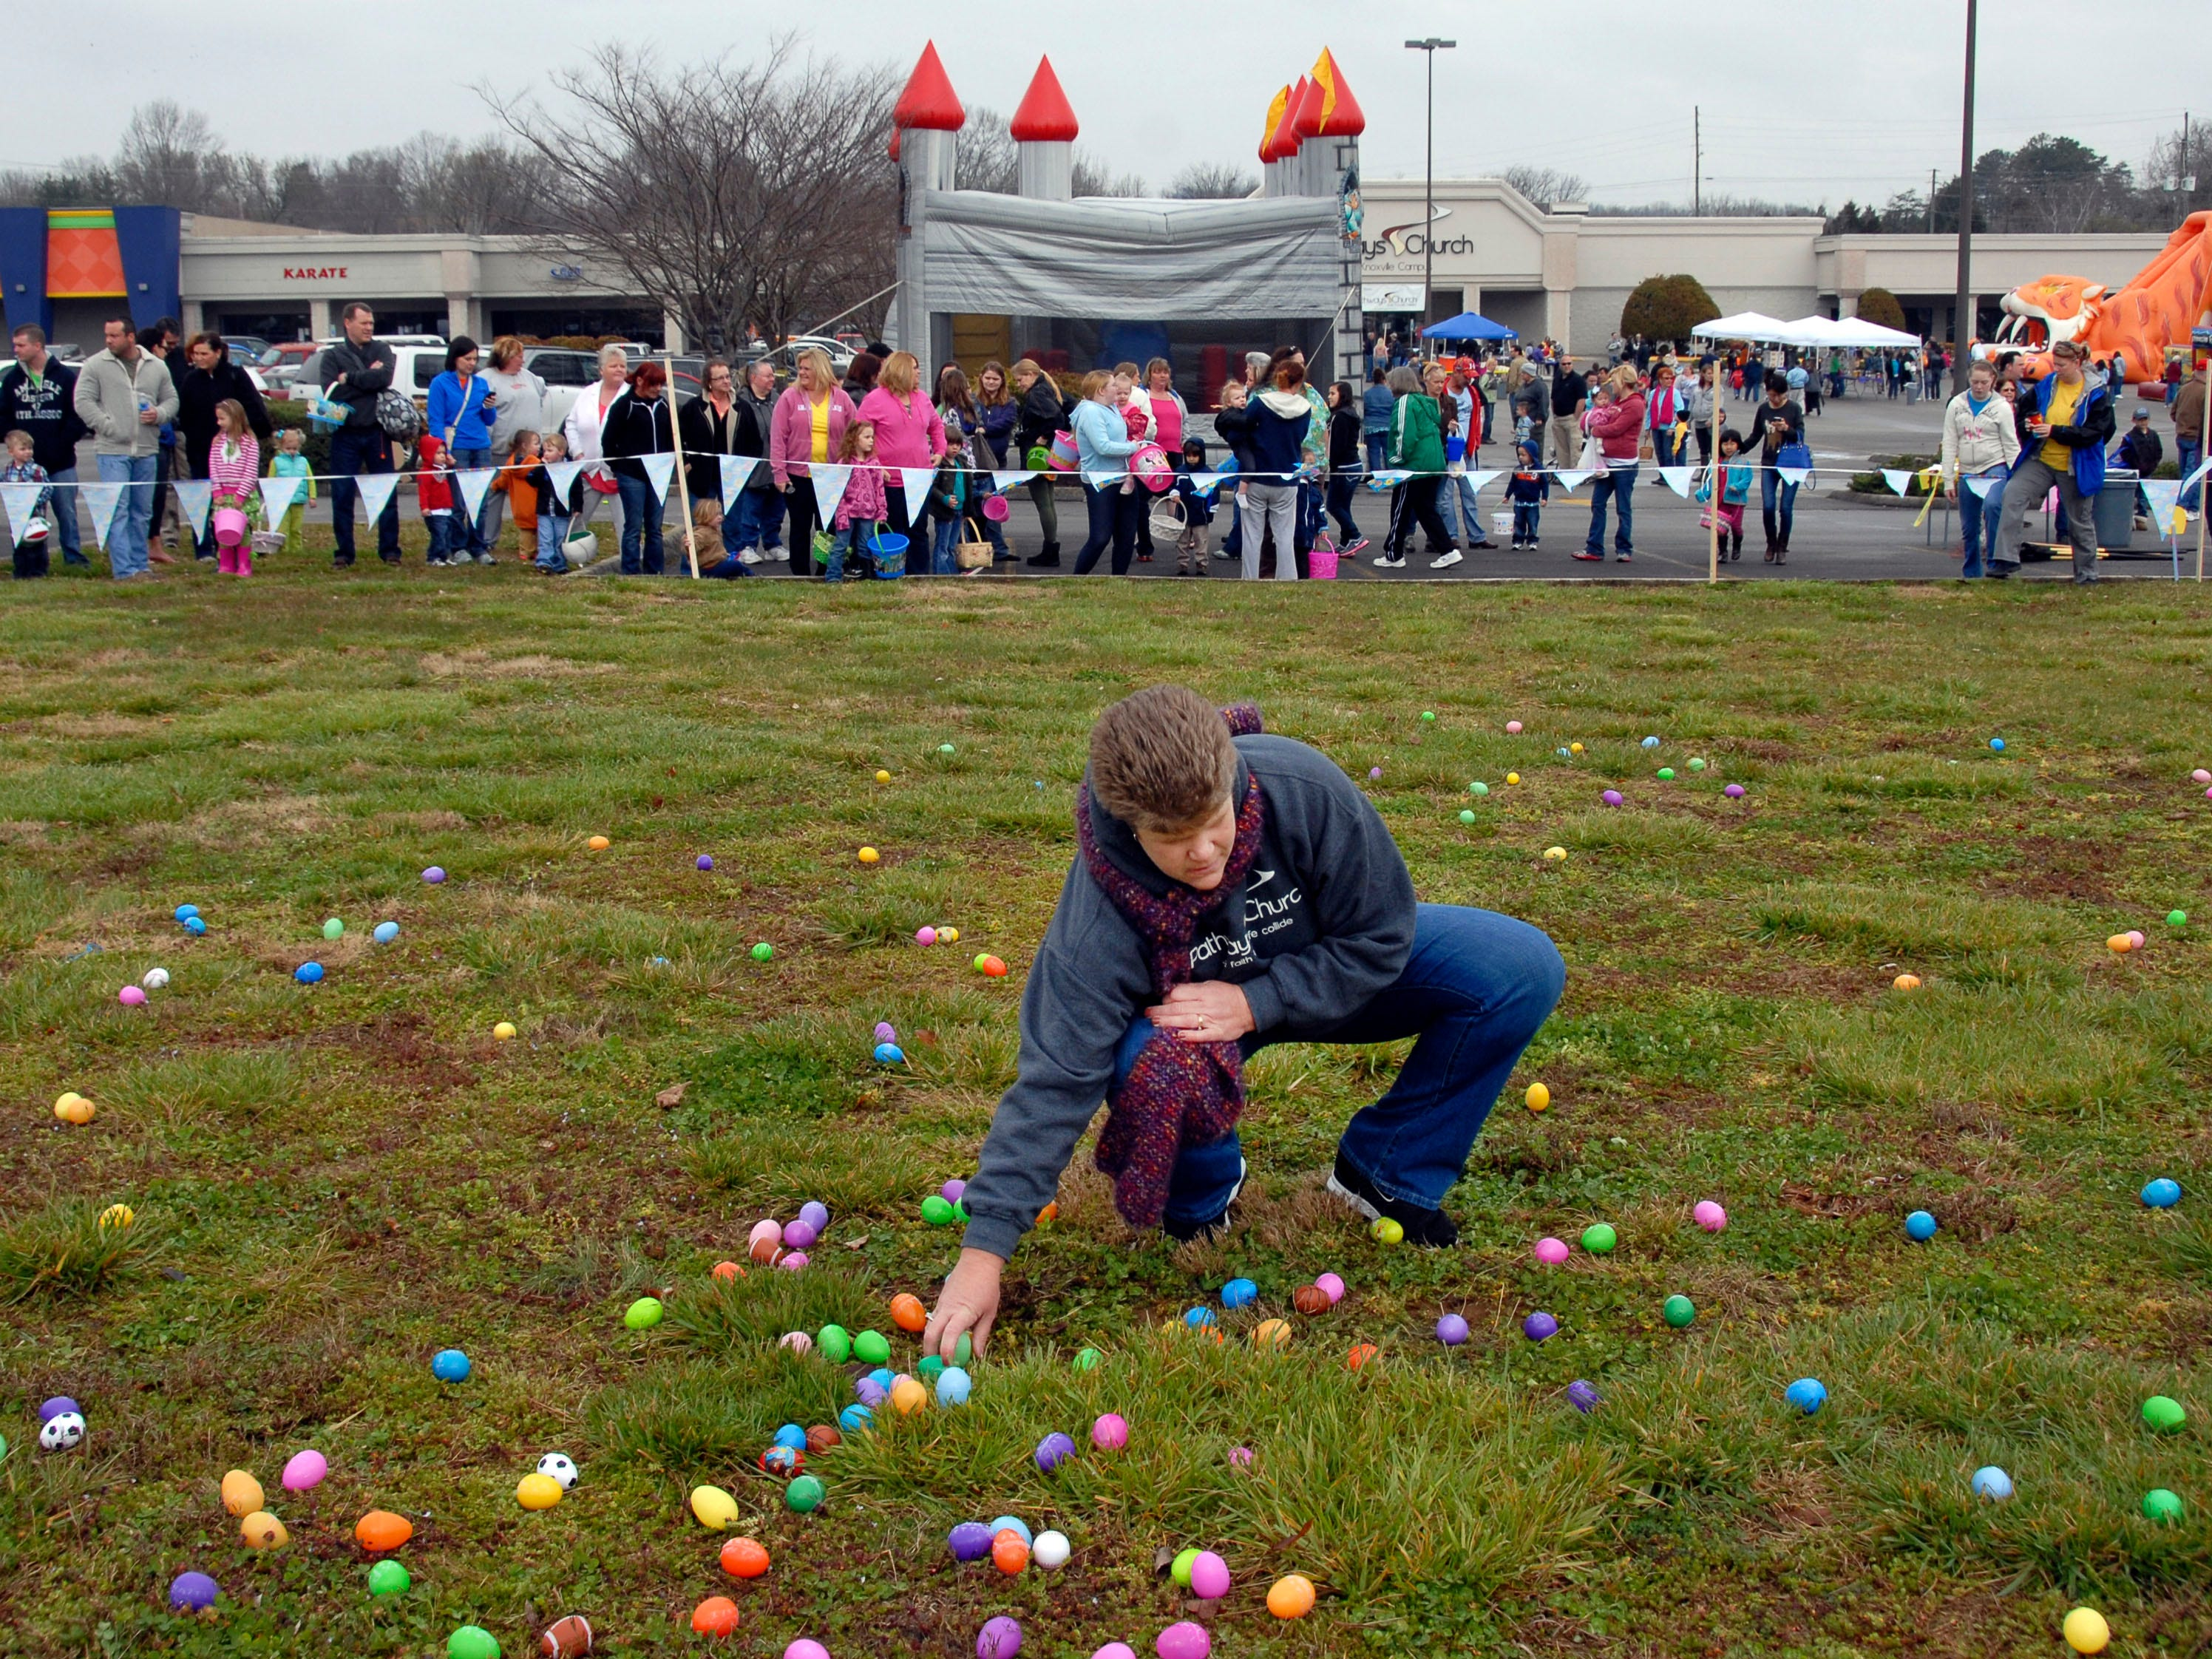 Patty Harmon, a member of Pathways Church, helps spread Easter eggs prior to the hunt during the Easter EGGstravaganza at the Pathways Church South Knoxville campus on Chapman Highway Saturday, March 30, 2013. Church members stuffed 15,000 plastic eggs for the event -- kicking off the opening of the new church, which will hold its first worship service Sunday, March 31. It is located in the old WalMart off Chapman Highway.